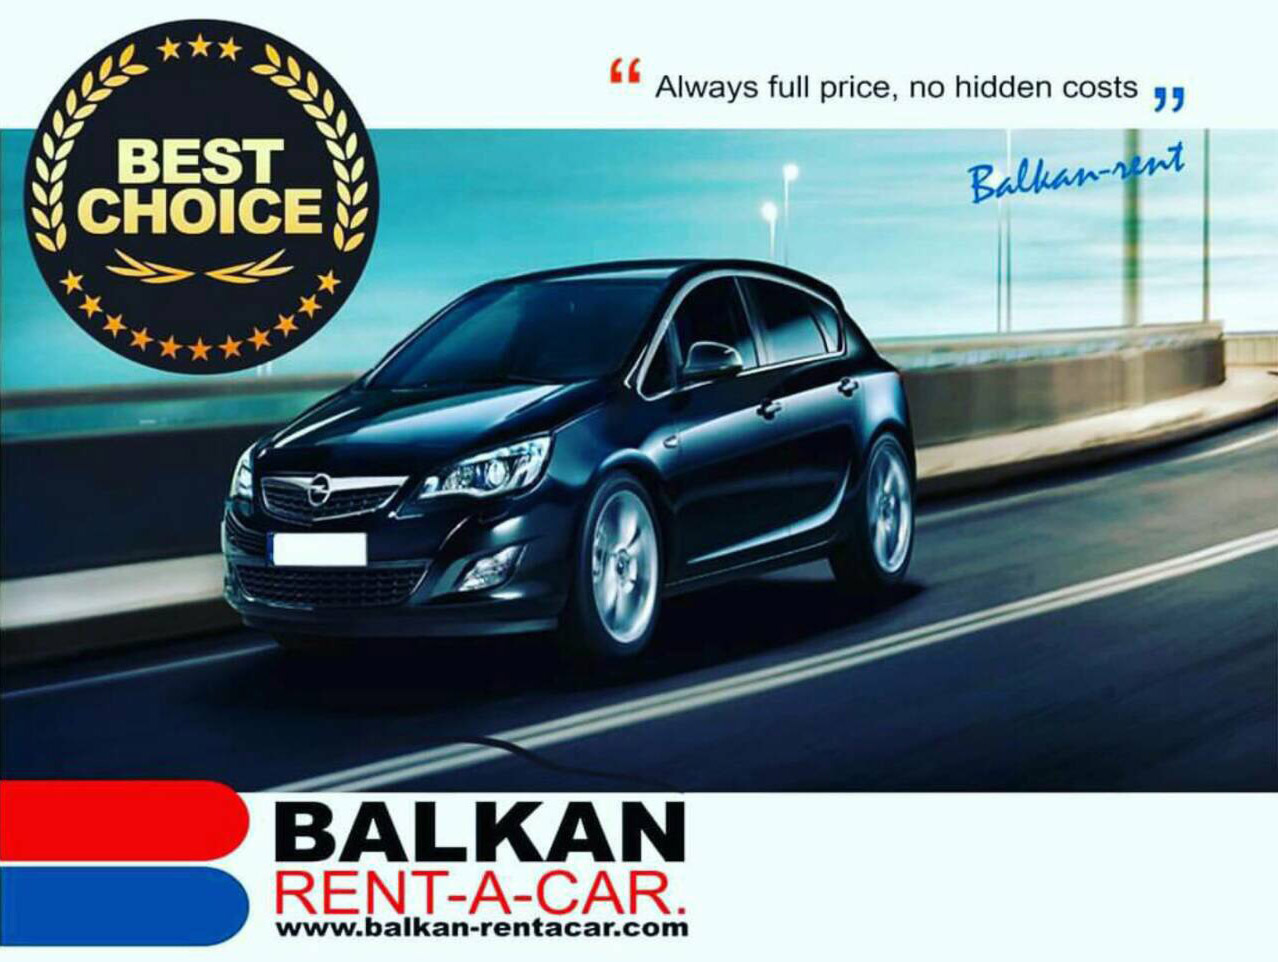 Balkan rent a car